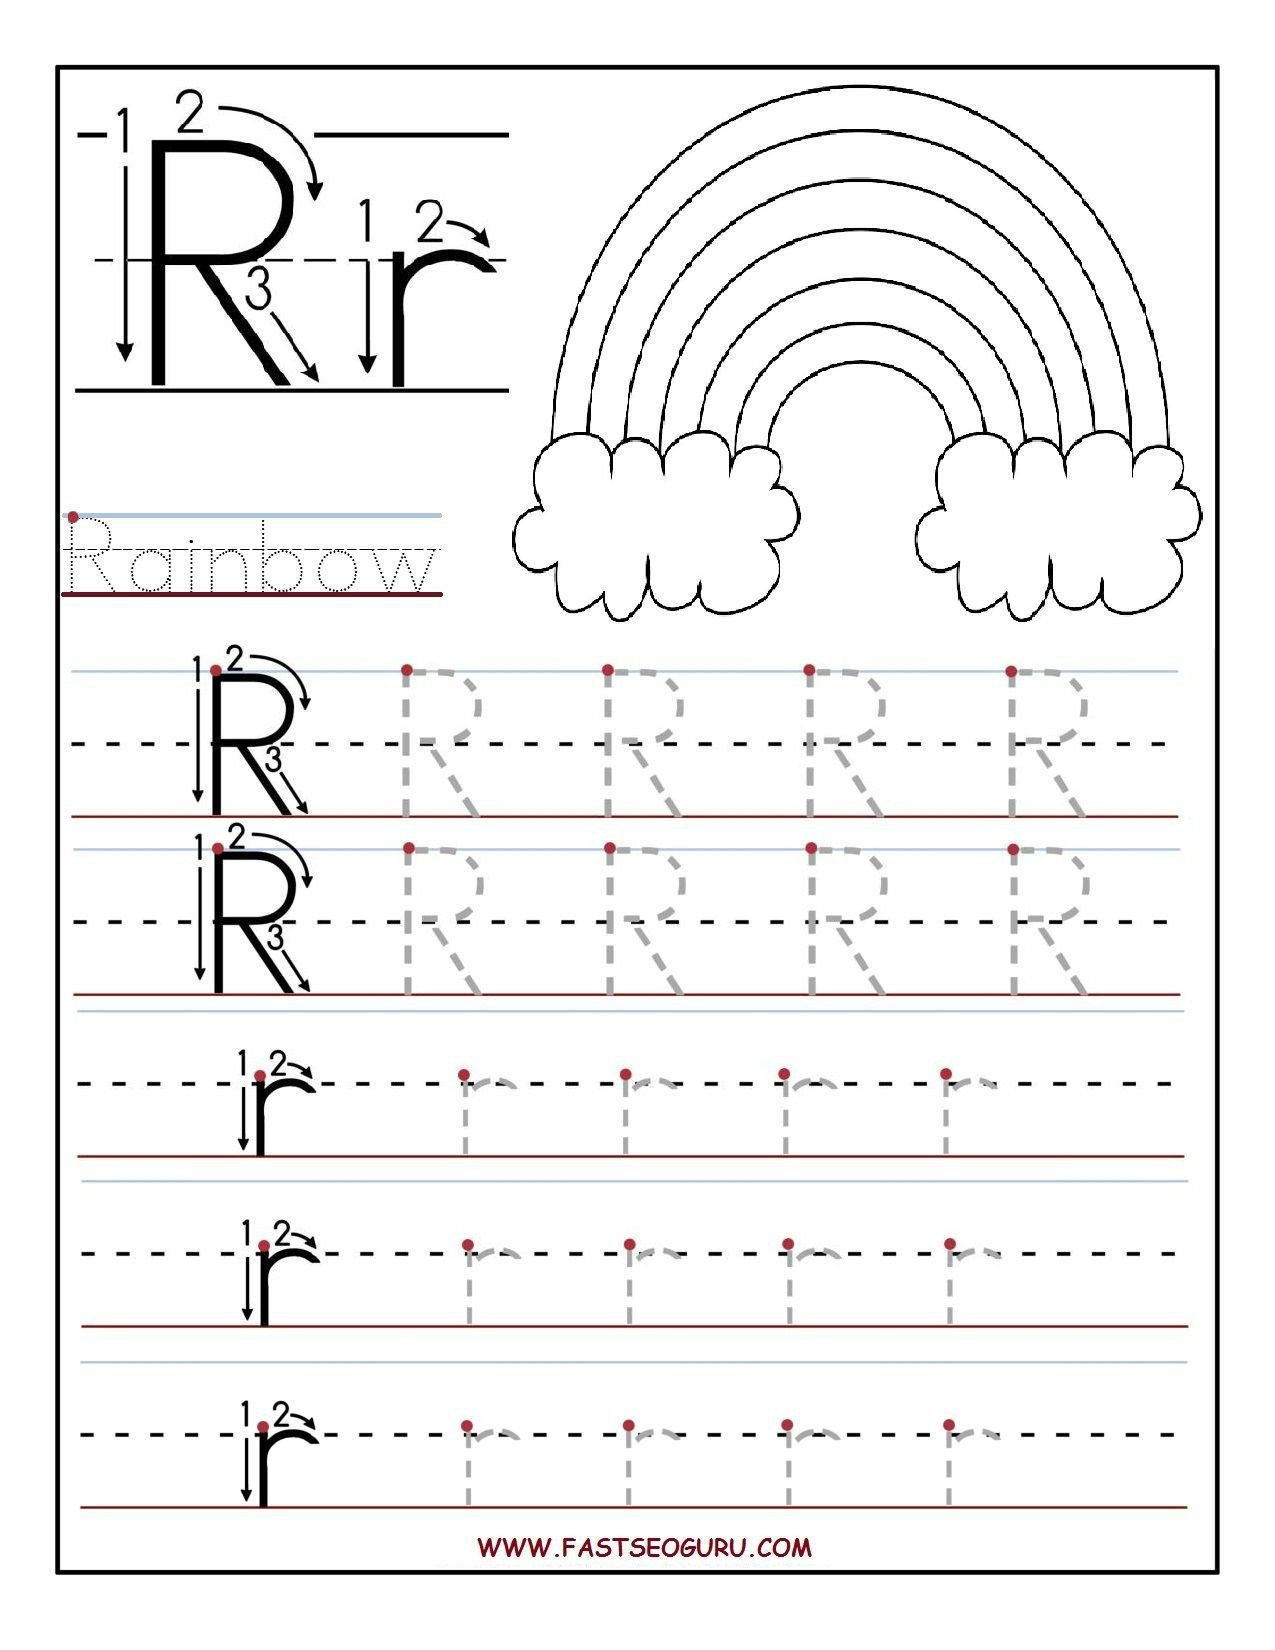 Rainbow Writing Worksheet Image Result for Tracing Letter